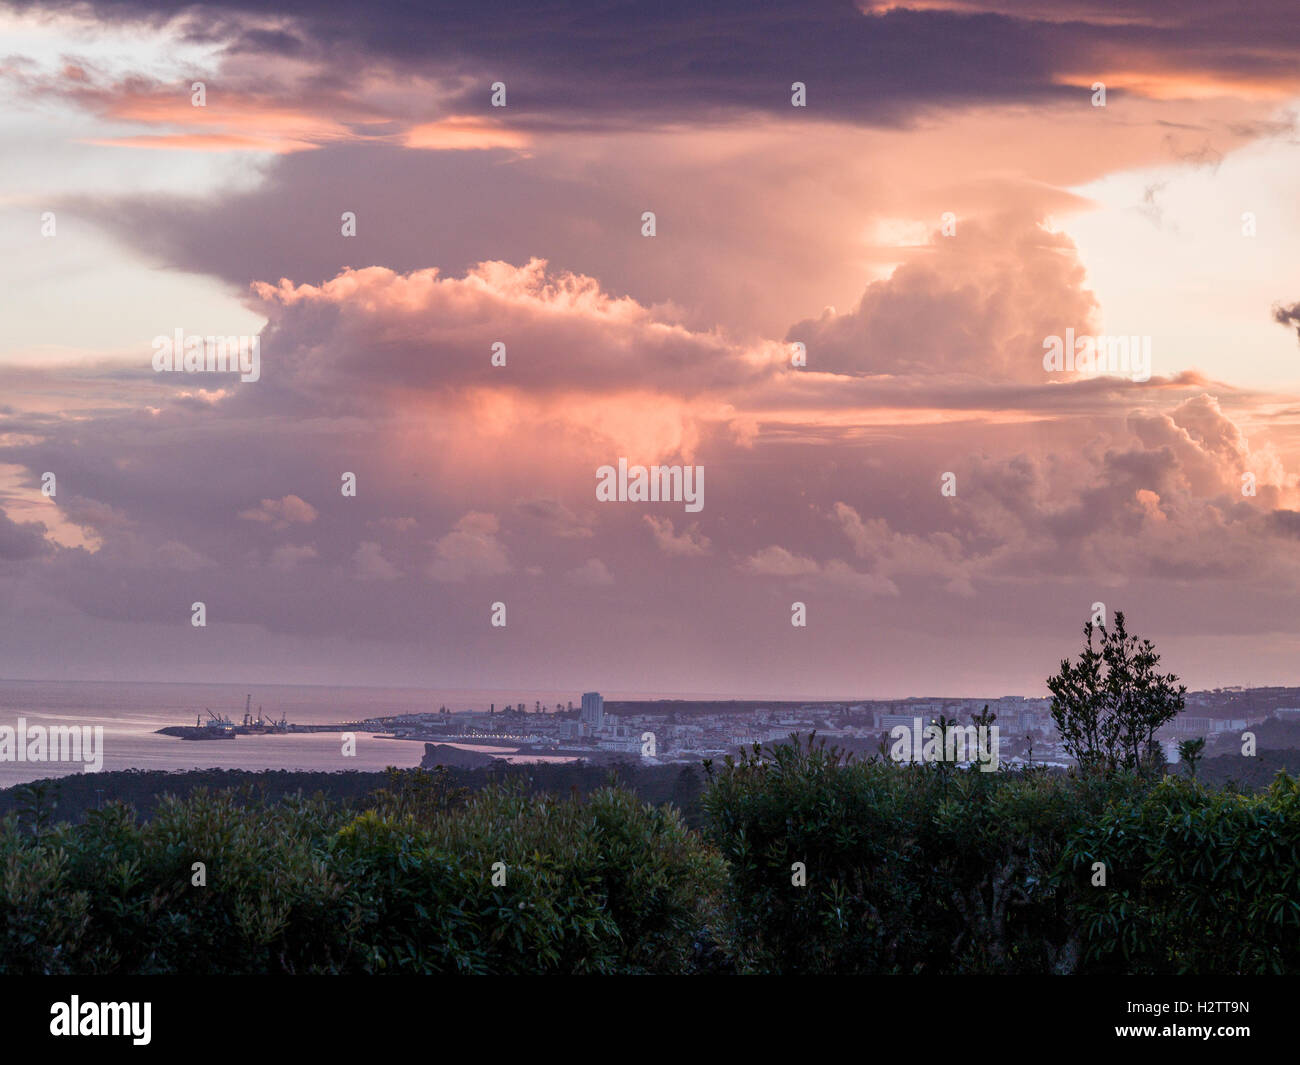 Storm Clouds above Ponta Delgada. High clouds move over the Azorian capital city and its harbour as the setting - Stock Image